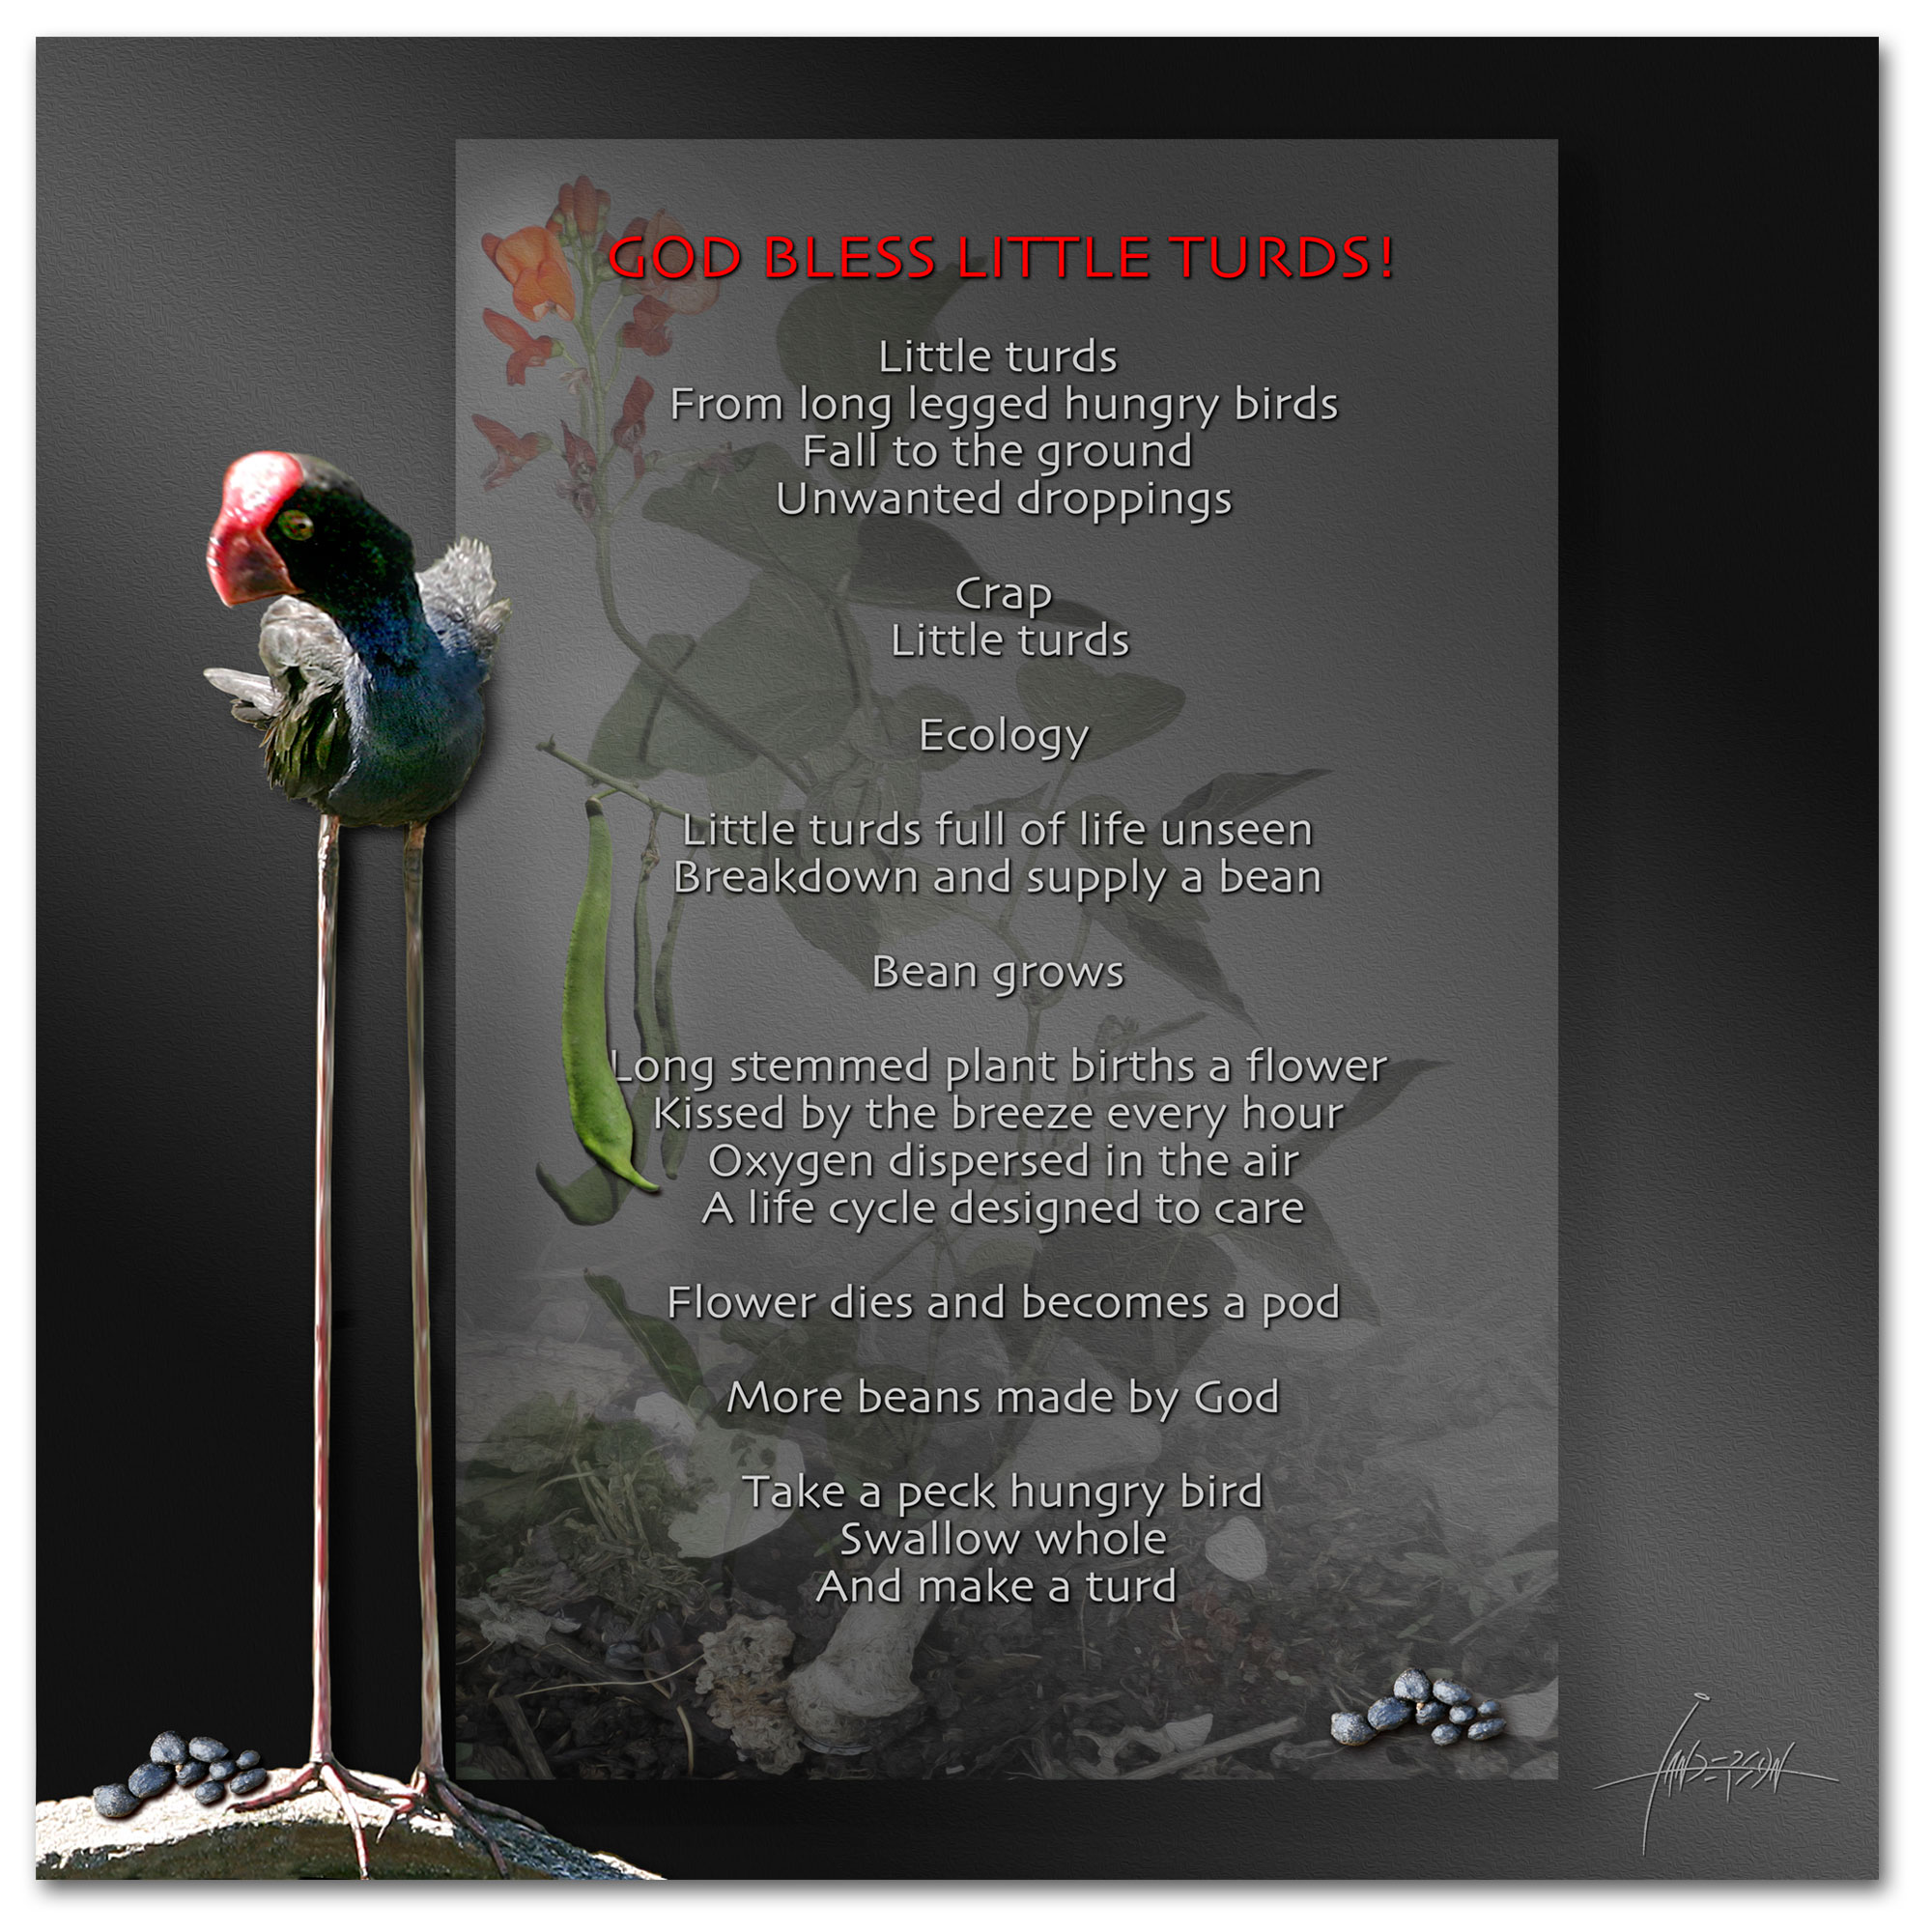 Ecology Compost Poem God bless little turds - A poem with an ecological twist by Ian Anderson